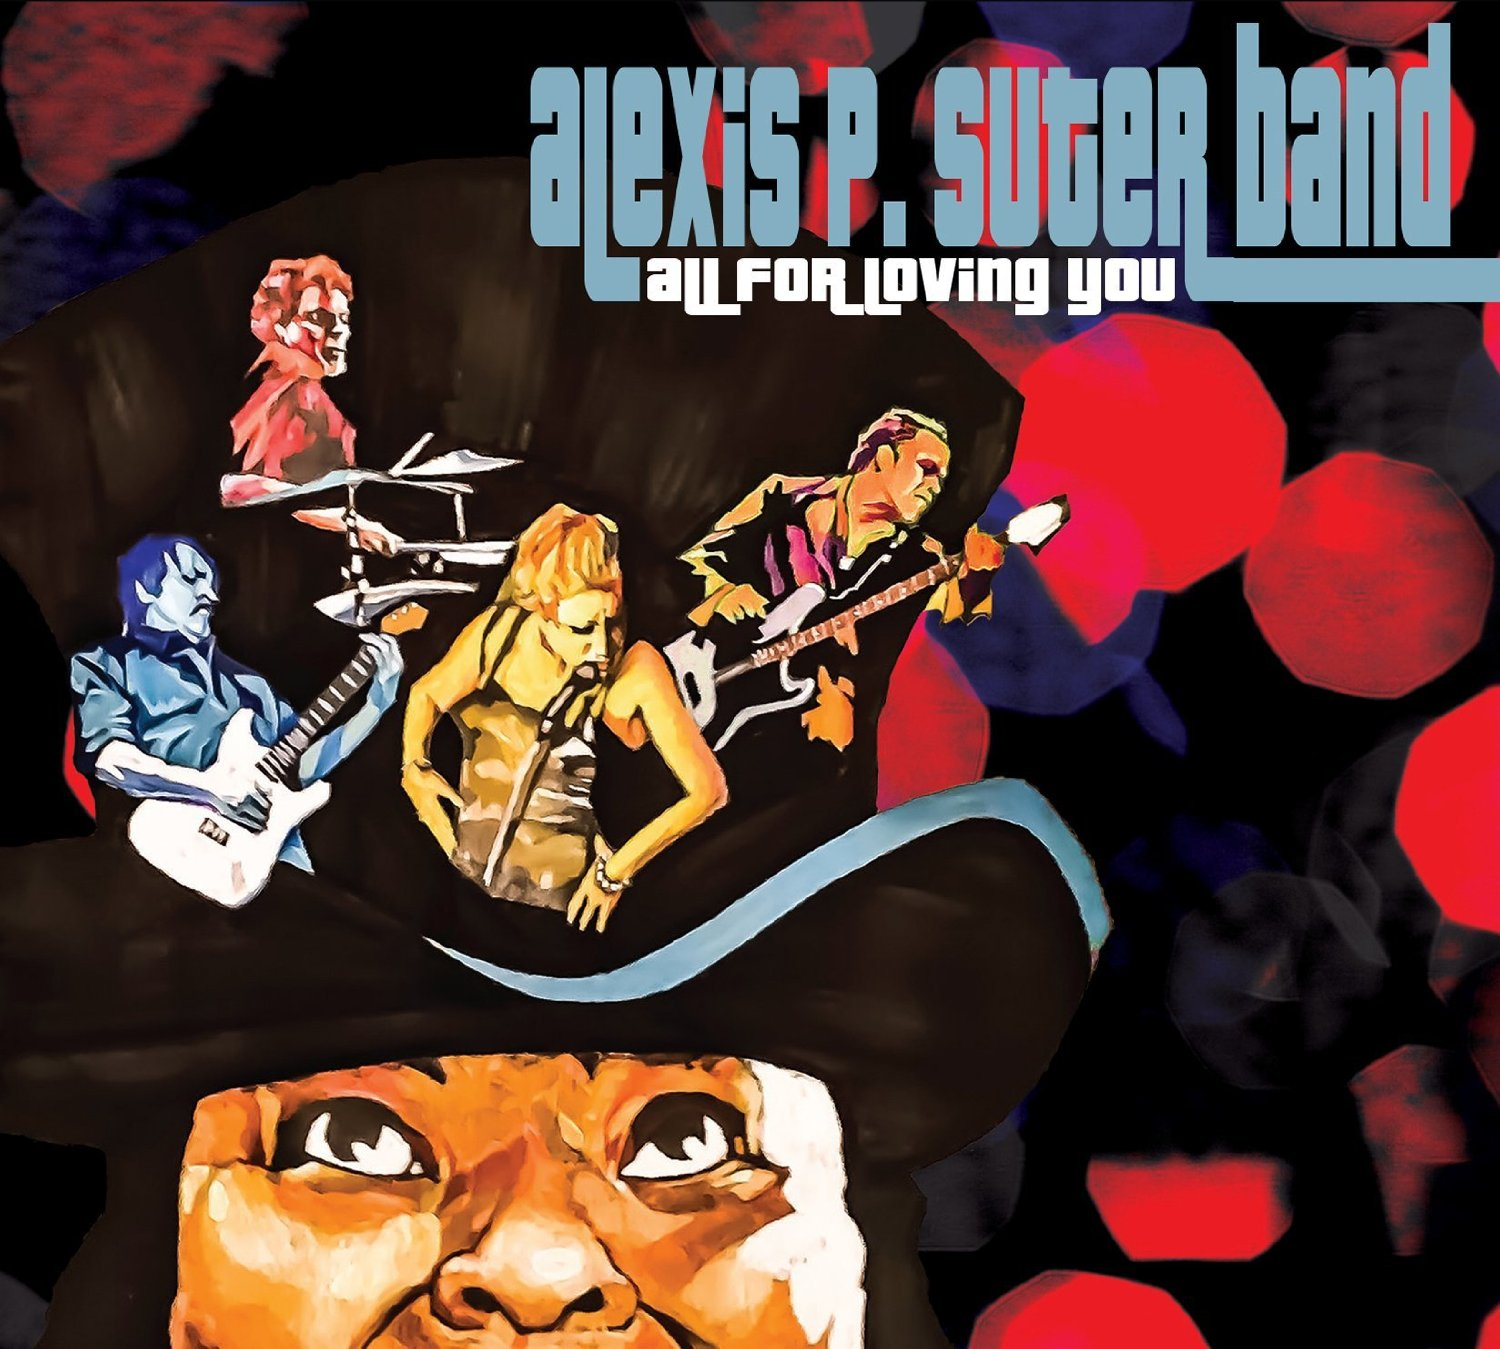 ALEXIS P. SUTER BAND – Don't ya'tell